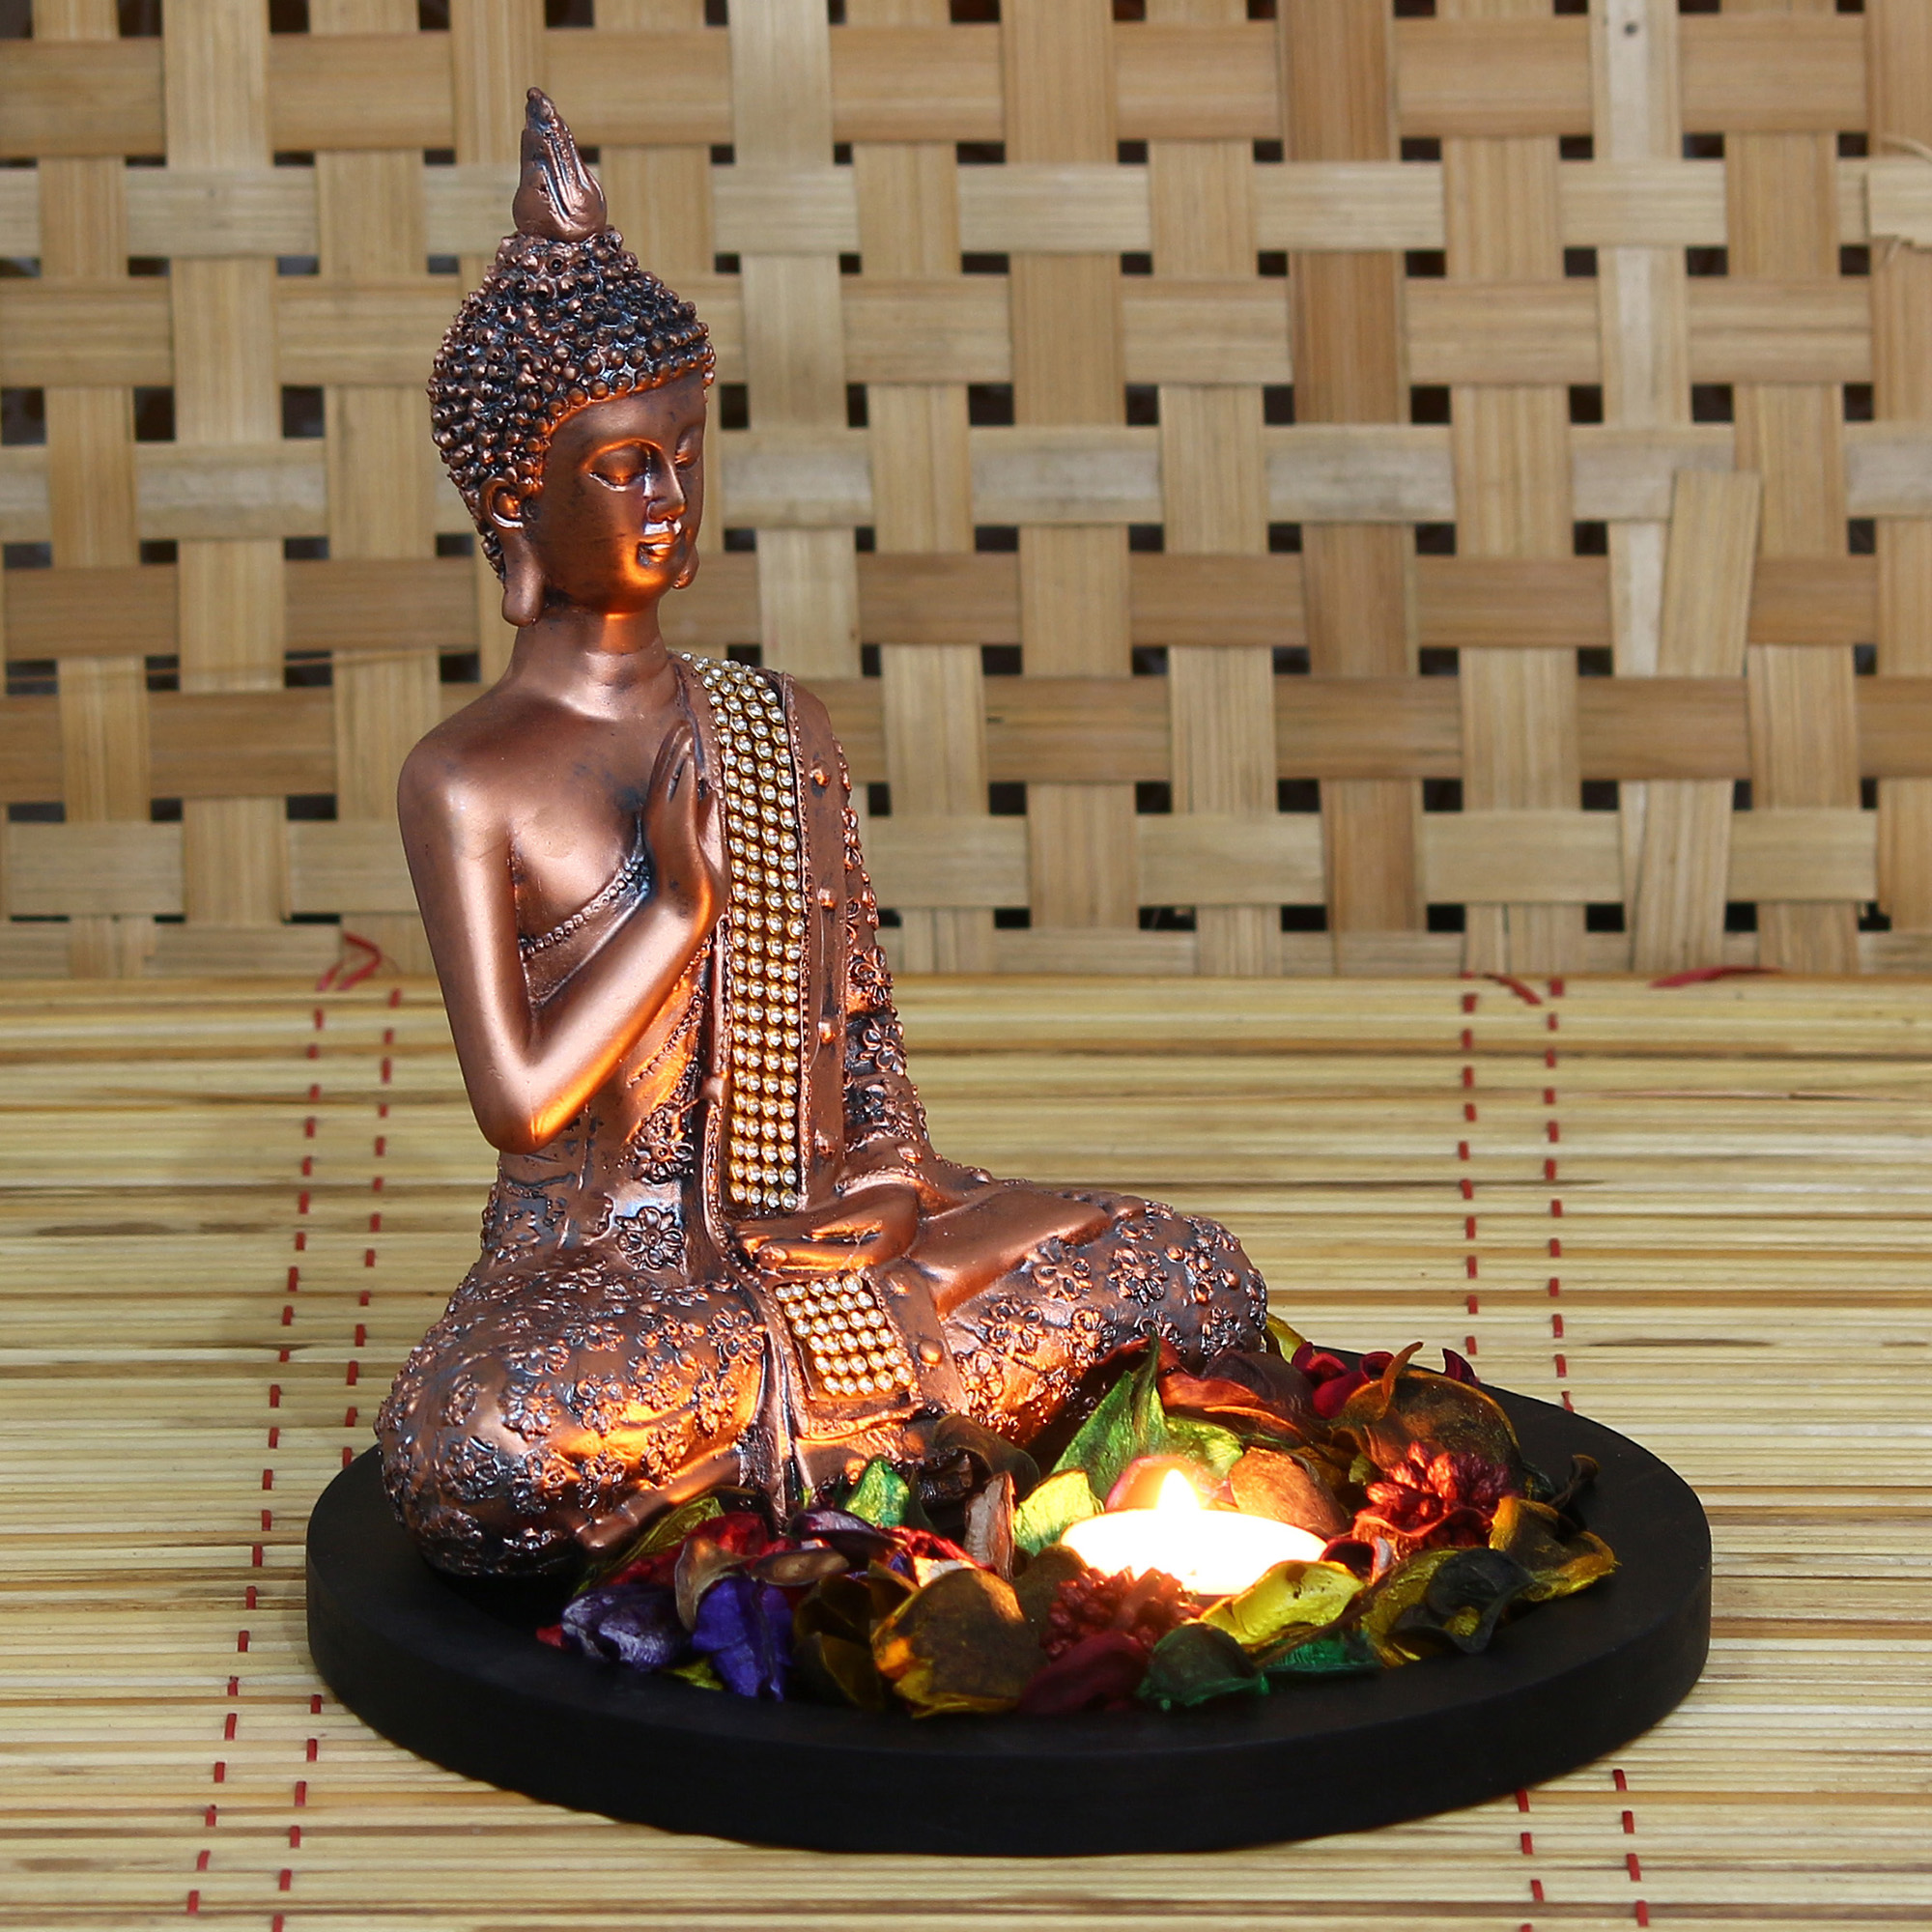 Copper Finish Meditating Buddha Decorative Showpiece with Wooden Base, Fragranced Petals and Tealight Indian Home Decor